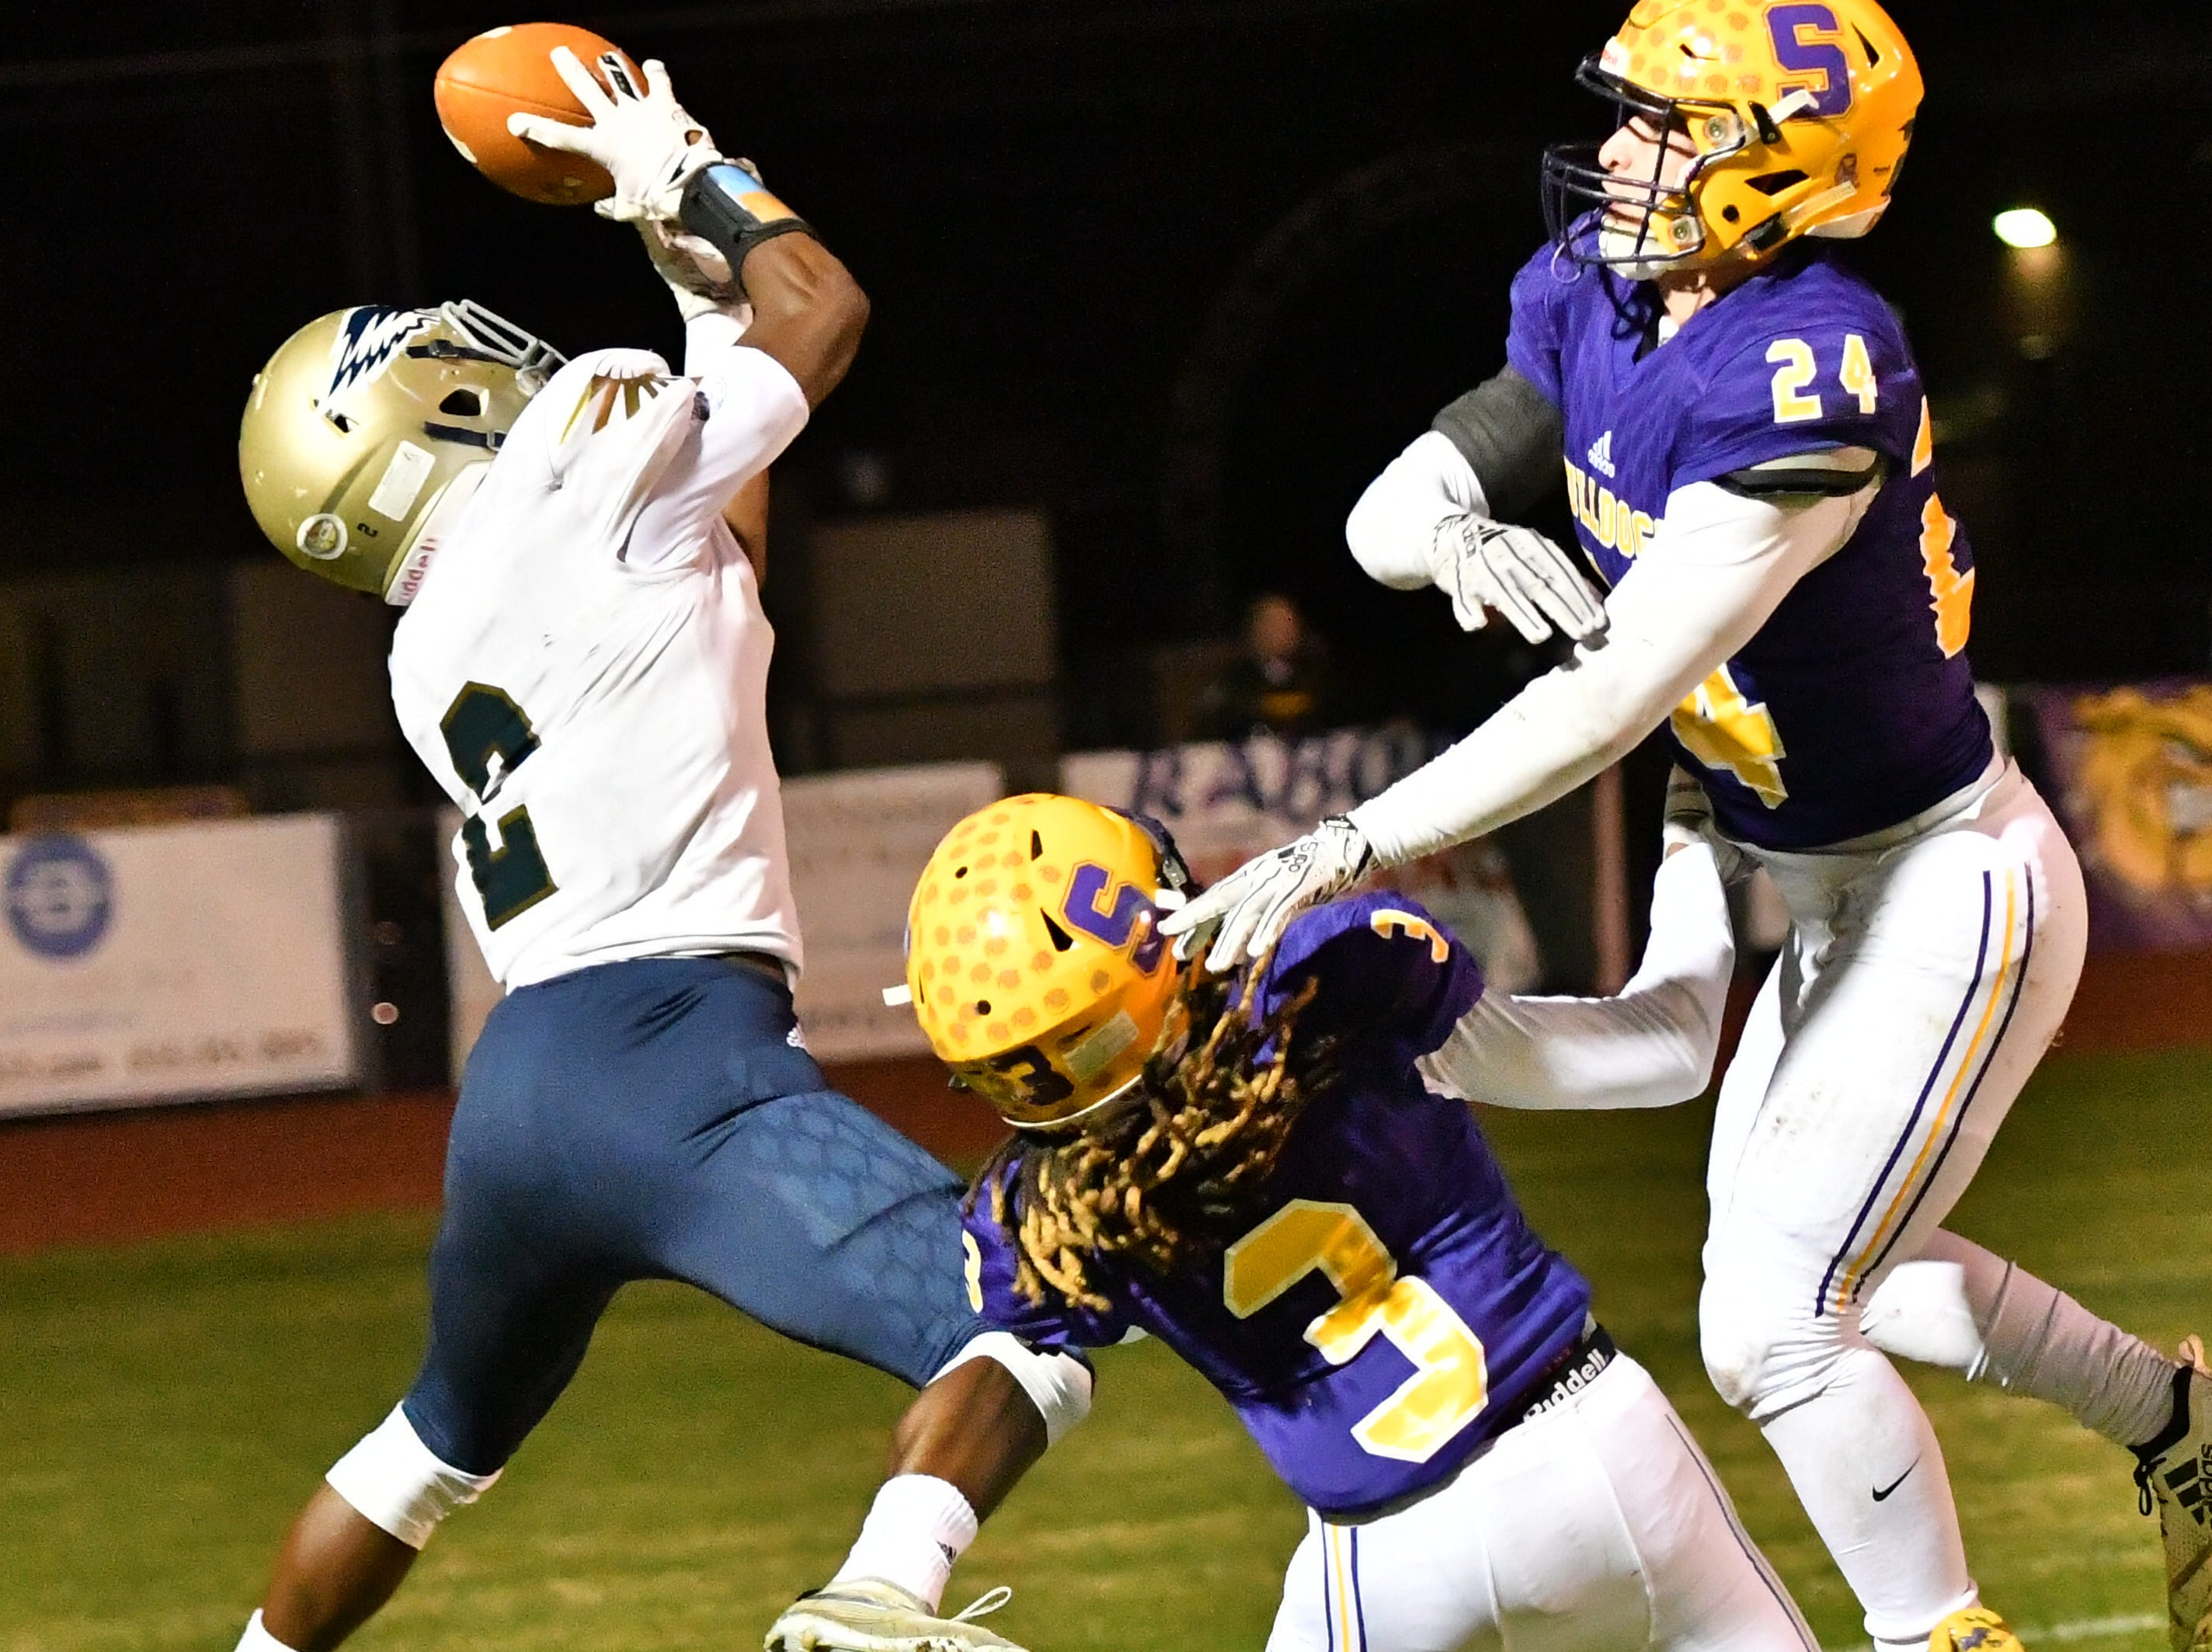 Independence wide receiver T.J. Sheffield hauls in a catch as Smyrna's Austin Guidry and Da'shawn Moore (3) defend.